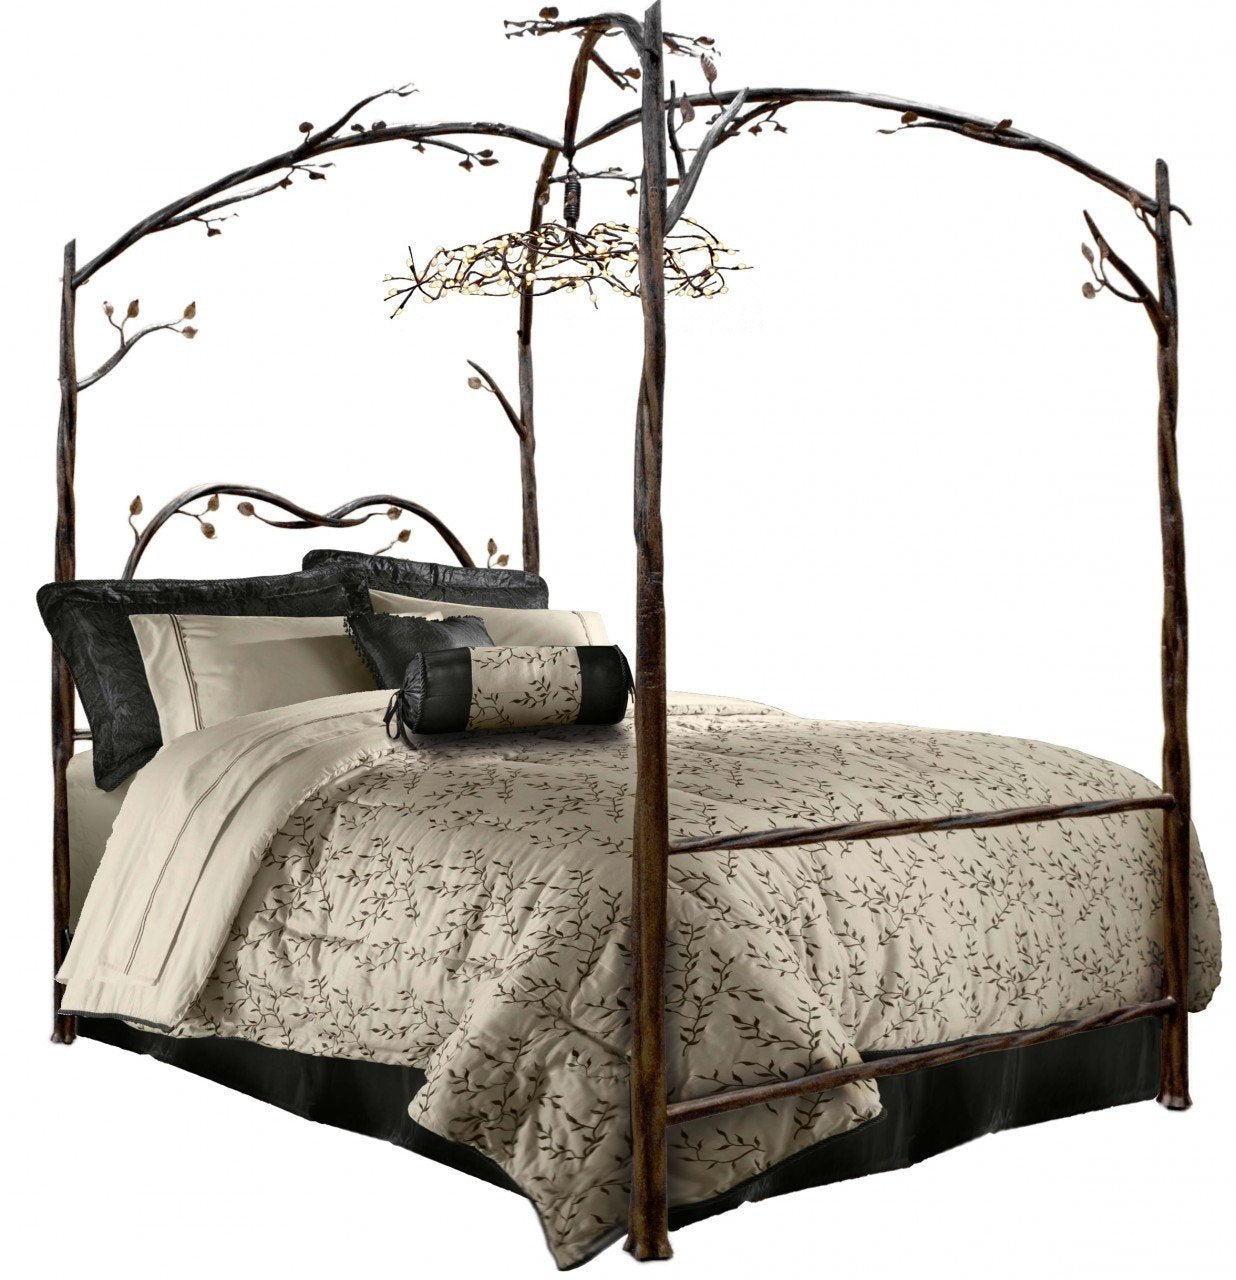 Forest Bed Hand Rubbed Copper Copper Accent Canopy 96 Product Photo